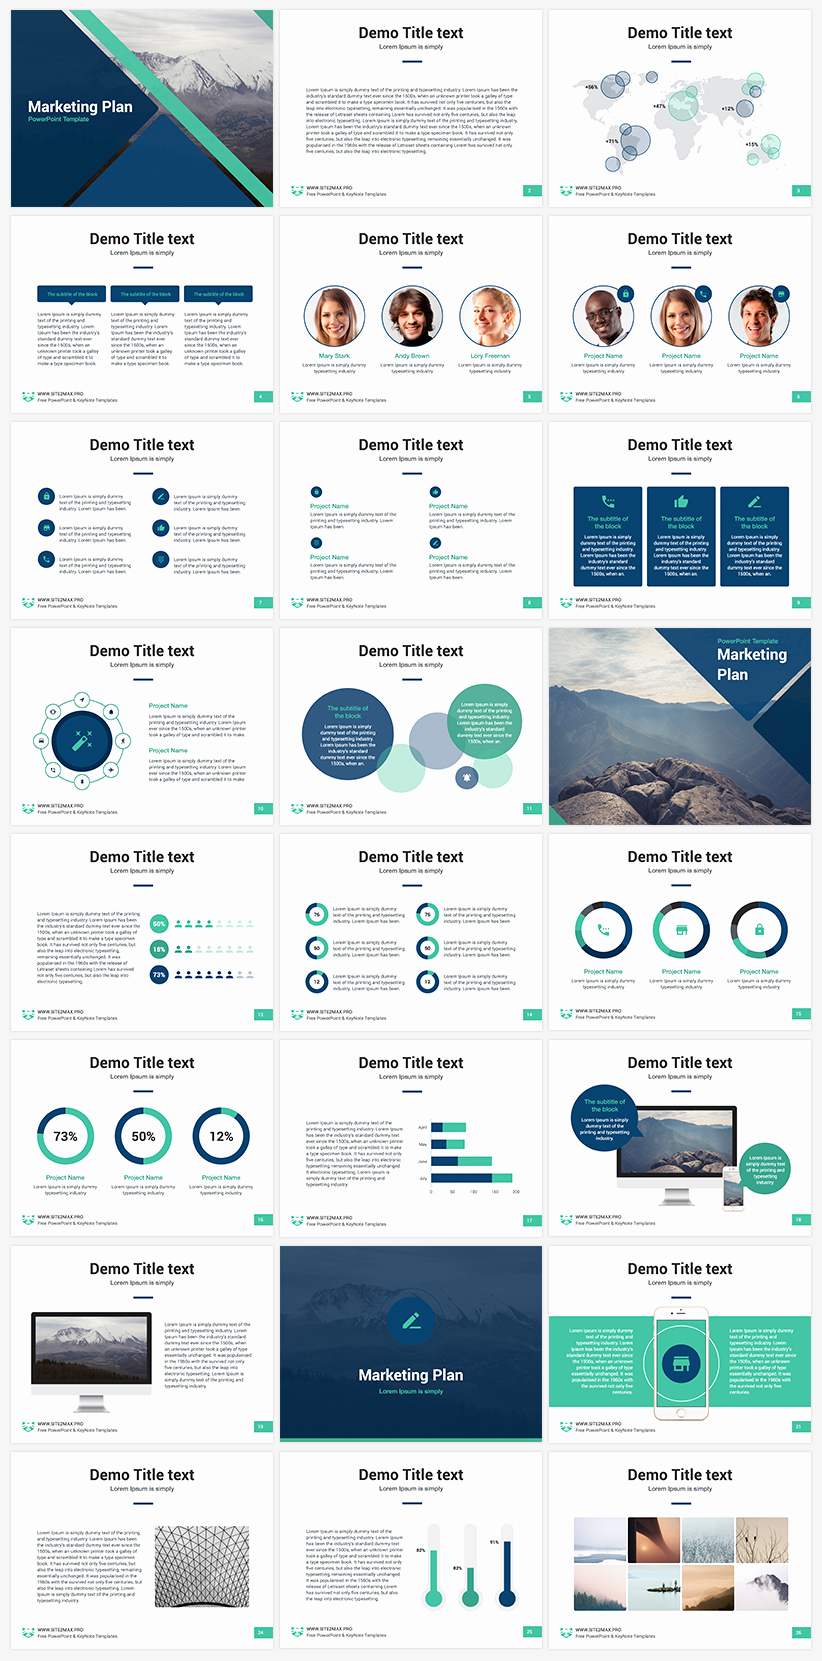 Marketing Plan Powerpoint Template Beautiful the Best 8 Free Powerpoint Templates Hipsthetic